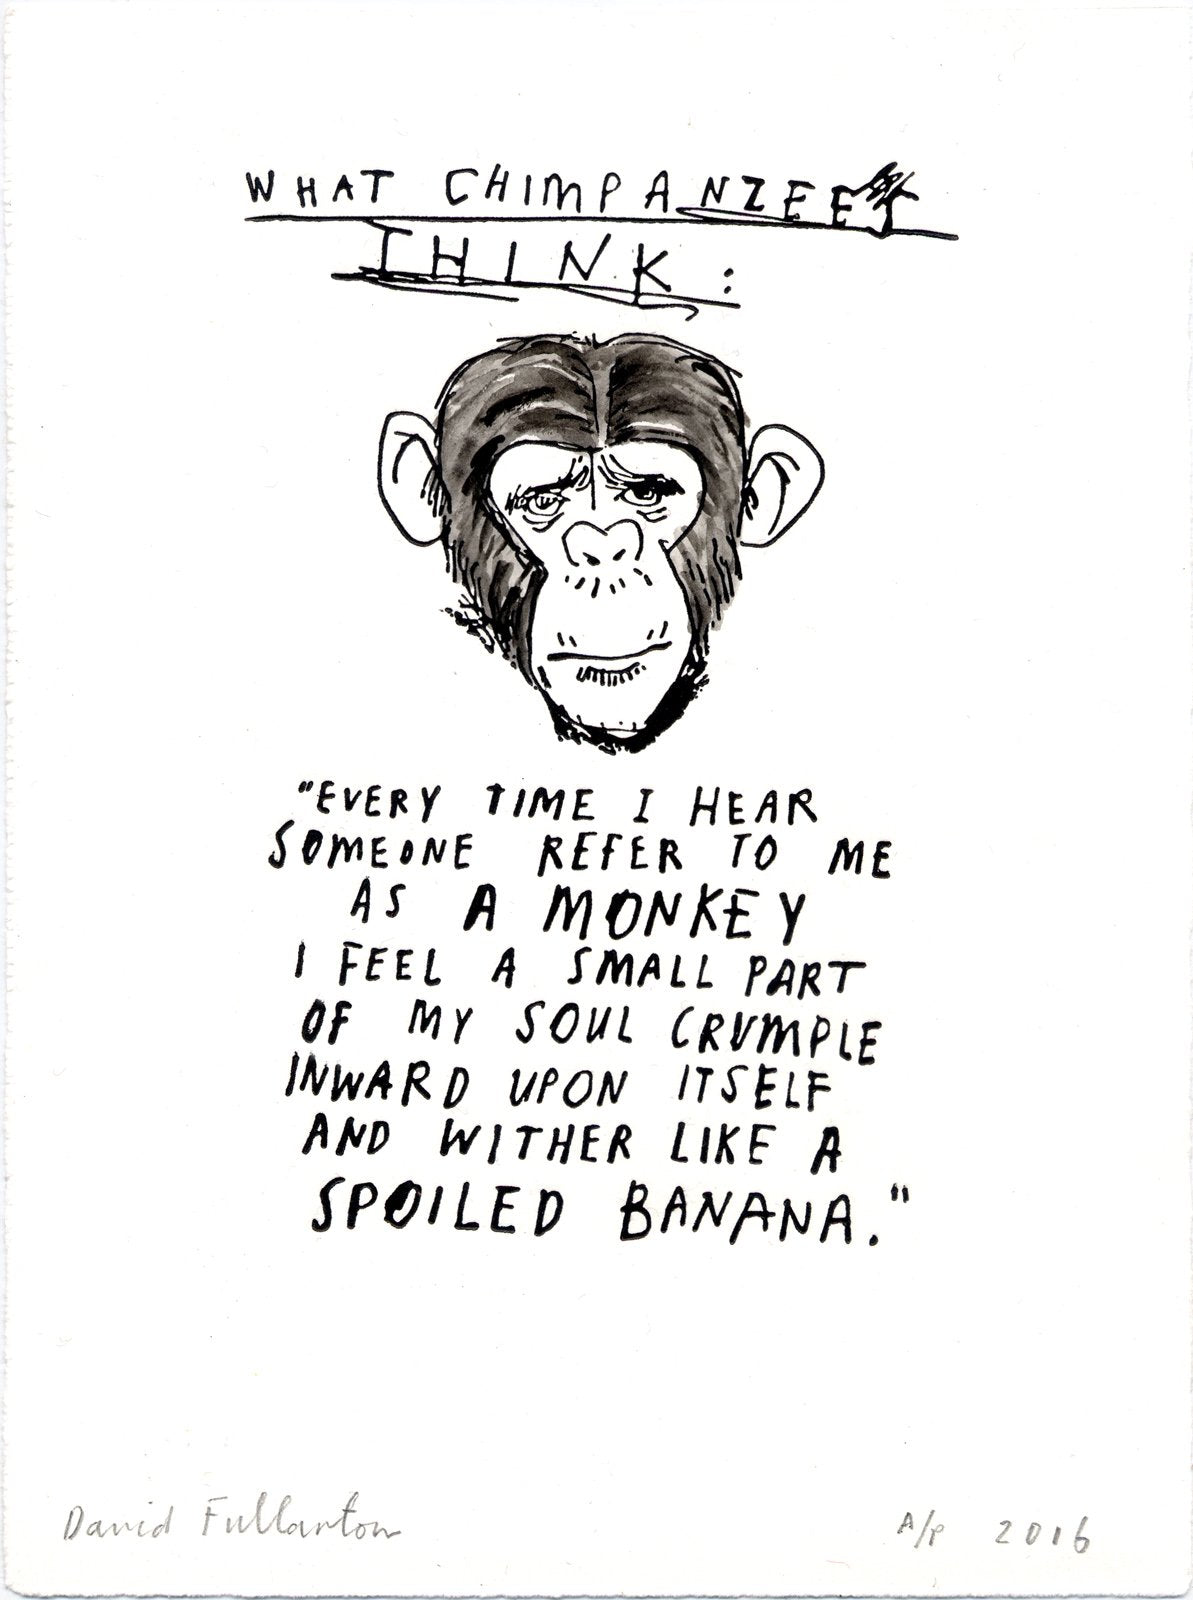 Chimp by David Fullarton